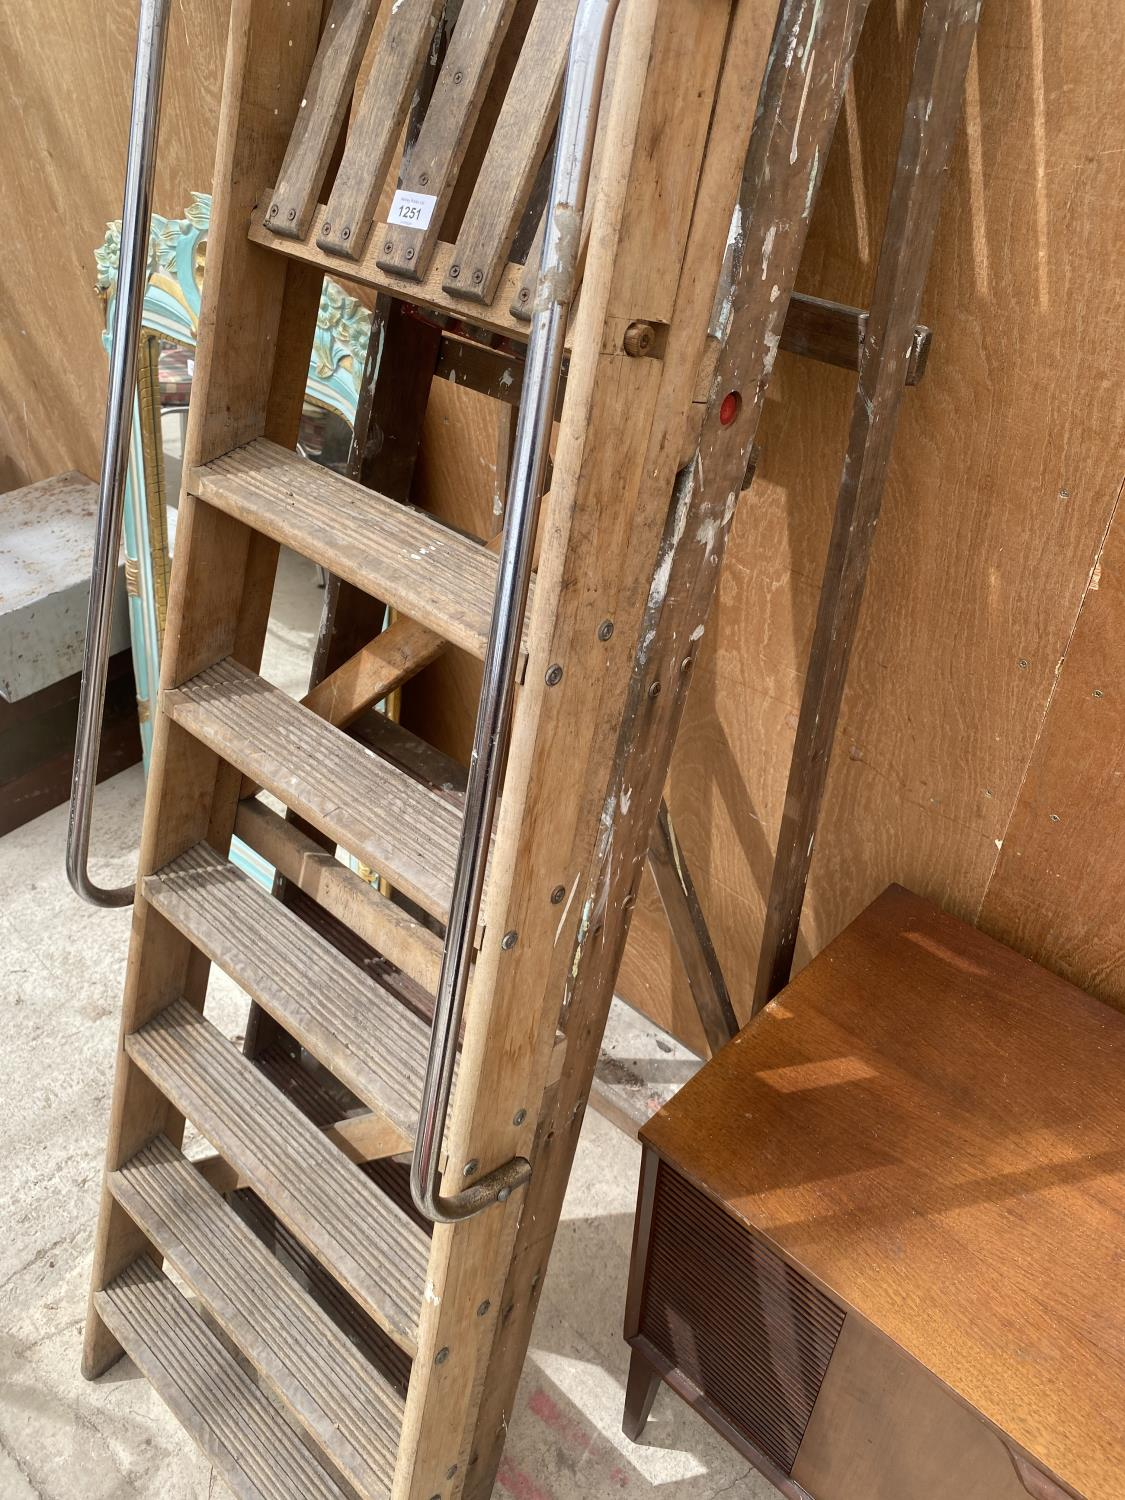 A VINTAGE 6 RUNG WOODEN STEP LADDER AND A VINTAGE 5 RUNG WOODEN STEP LADDER - Image 3 of 4